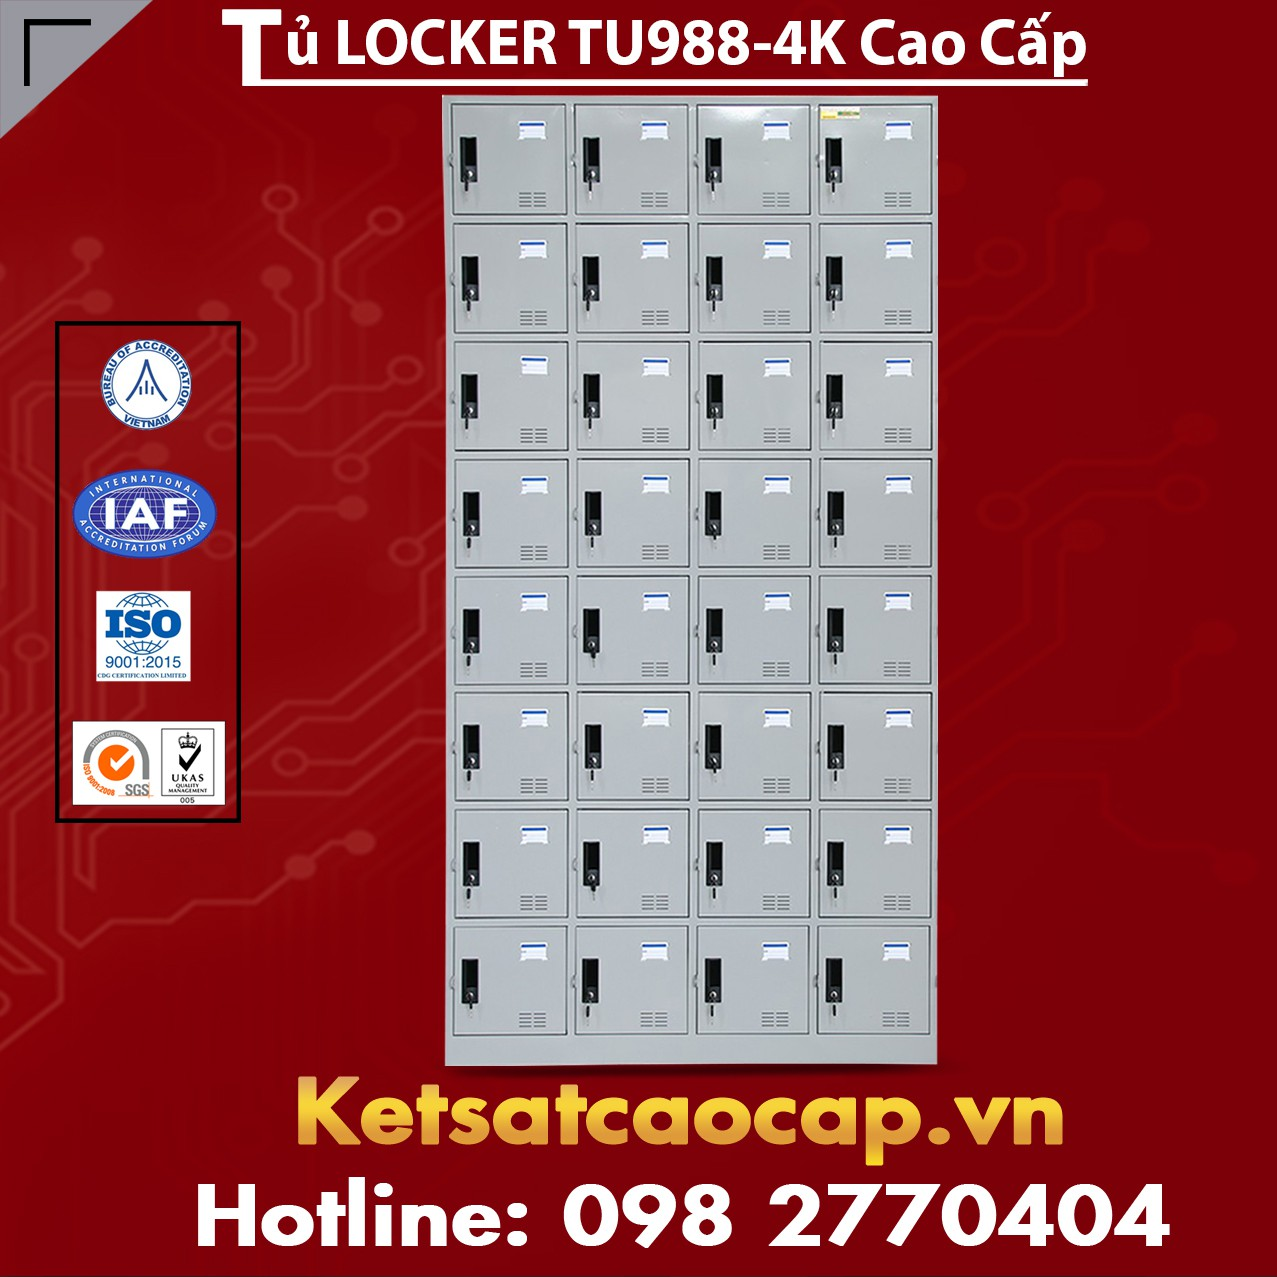 Tủ Locker TU988-4K